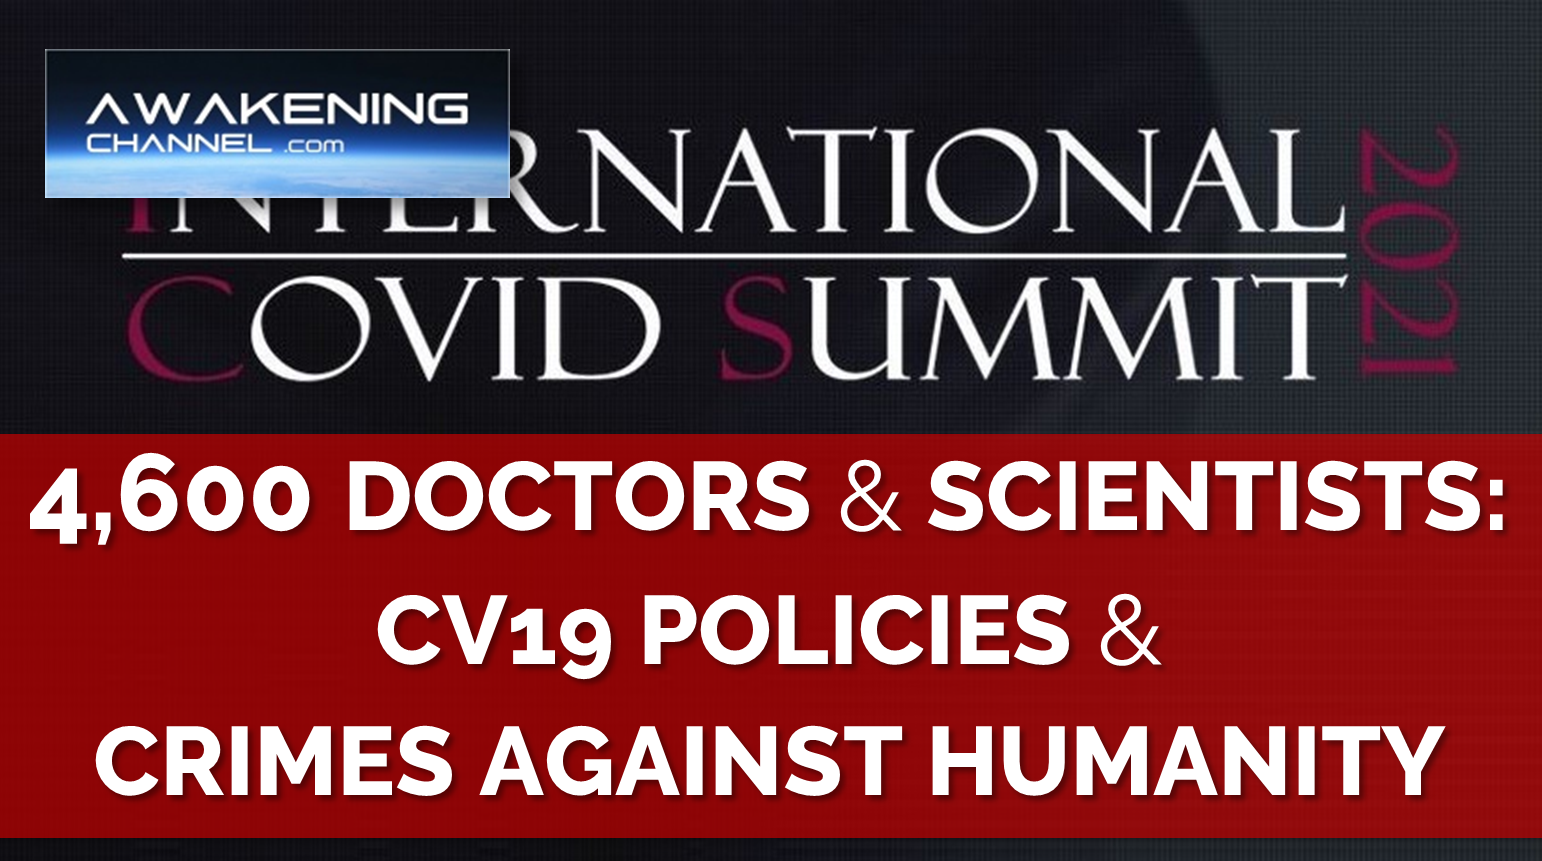 4,600 Doctors & Scientists: These Policies may actually constitute Crimes Against Humanity